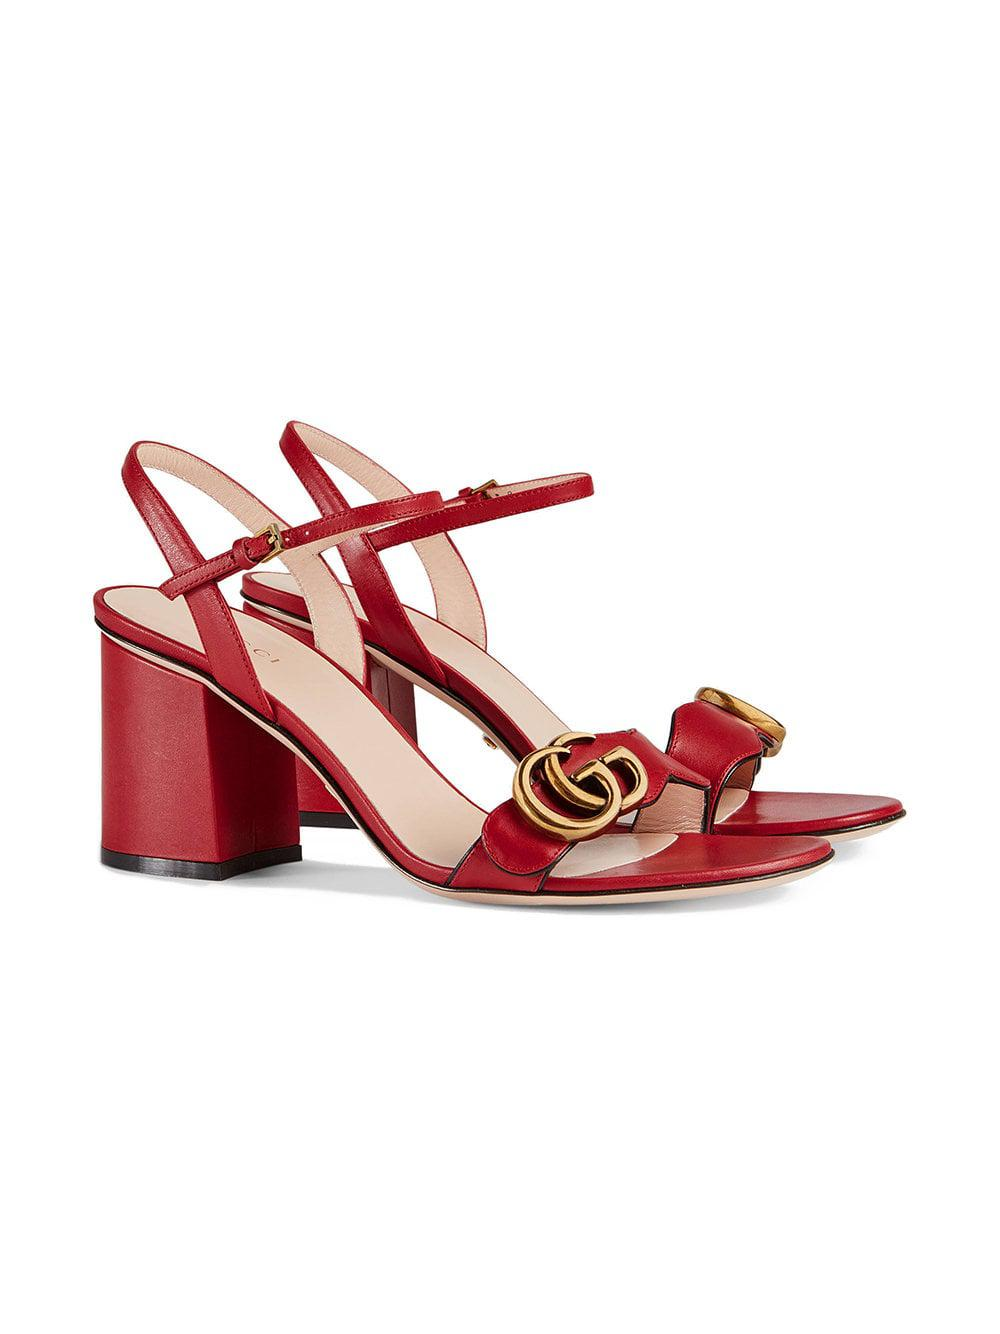 3d8d715d968 Gucci Leather Mid-heel Sandals in Red - Save 20% - Lyst